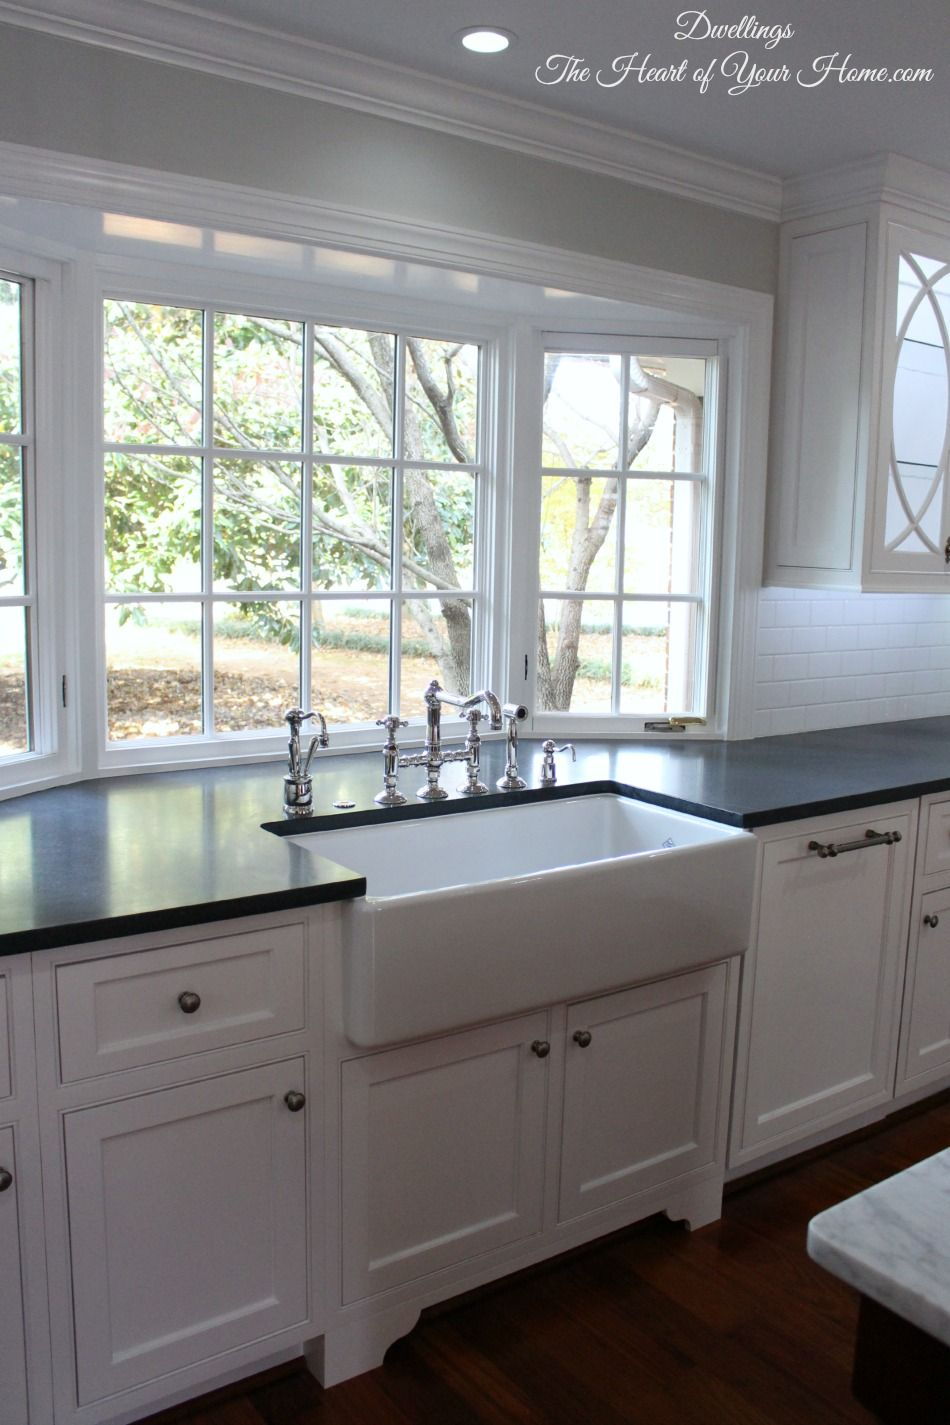 Kitchen window above sink light fixture no window kitchen sink ideas - Dwellings The Heart Of Your Home Kitchen Tour Our New Farmhouse Style Kitchen Can We Move The Giant Kitchen Window Out